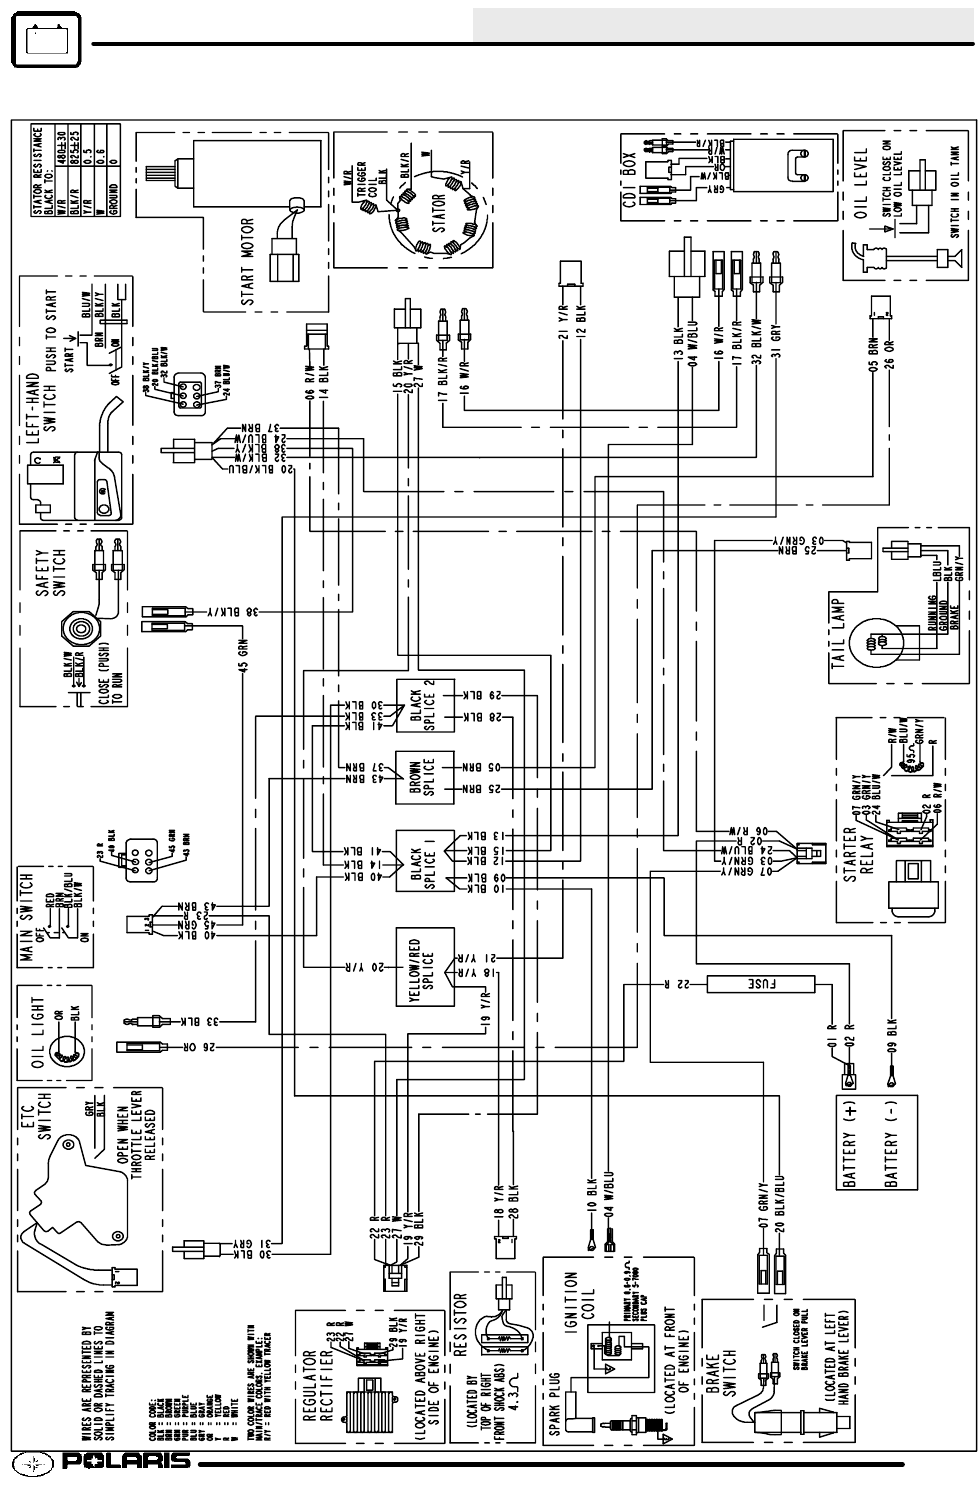 medium resolution of polaris electrical diagram wiring diagram sheet polaris general wiring schematic polaris electrical diagram wiring diagram article